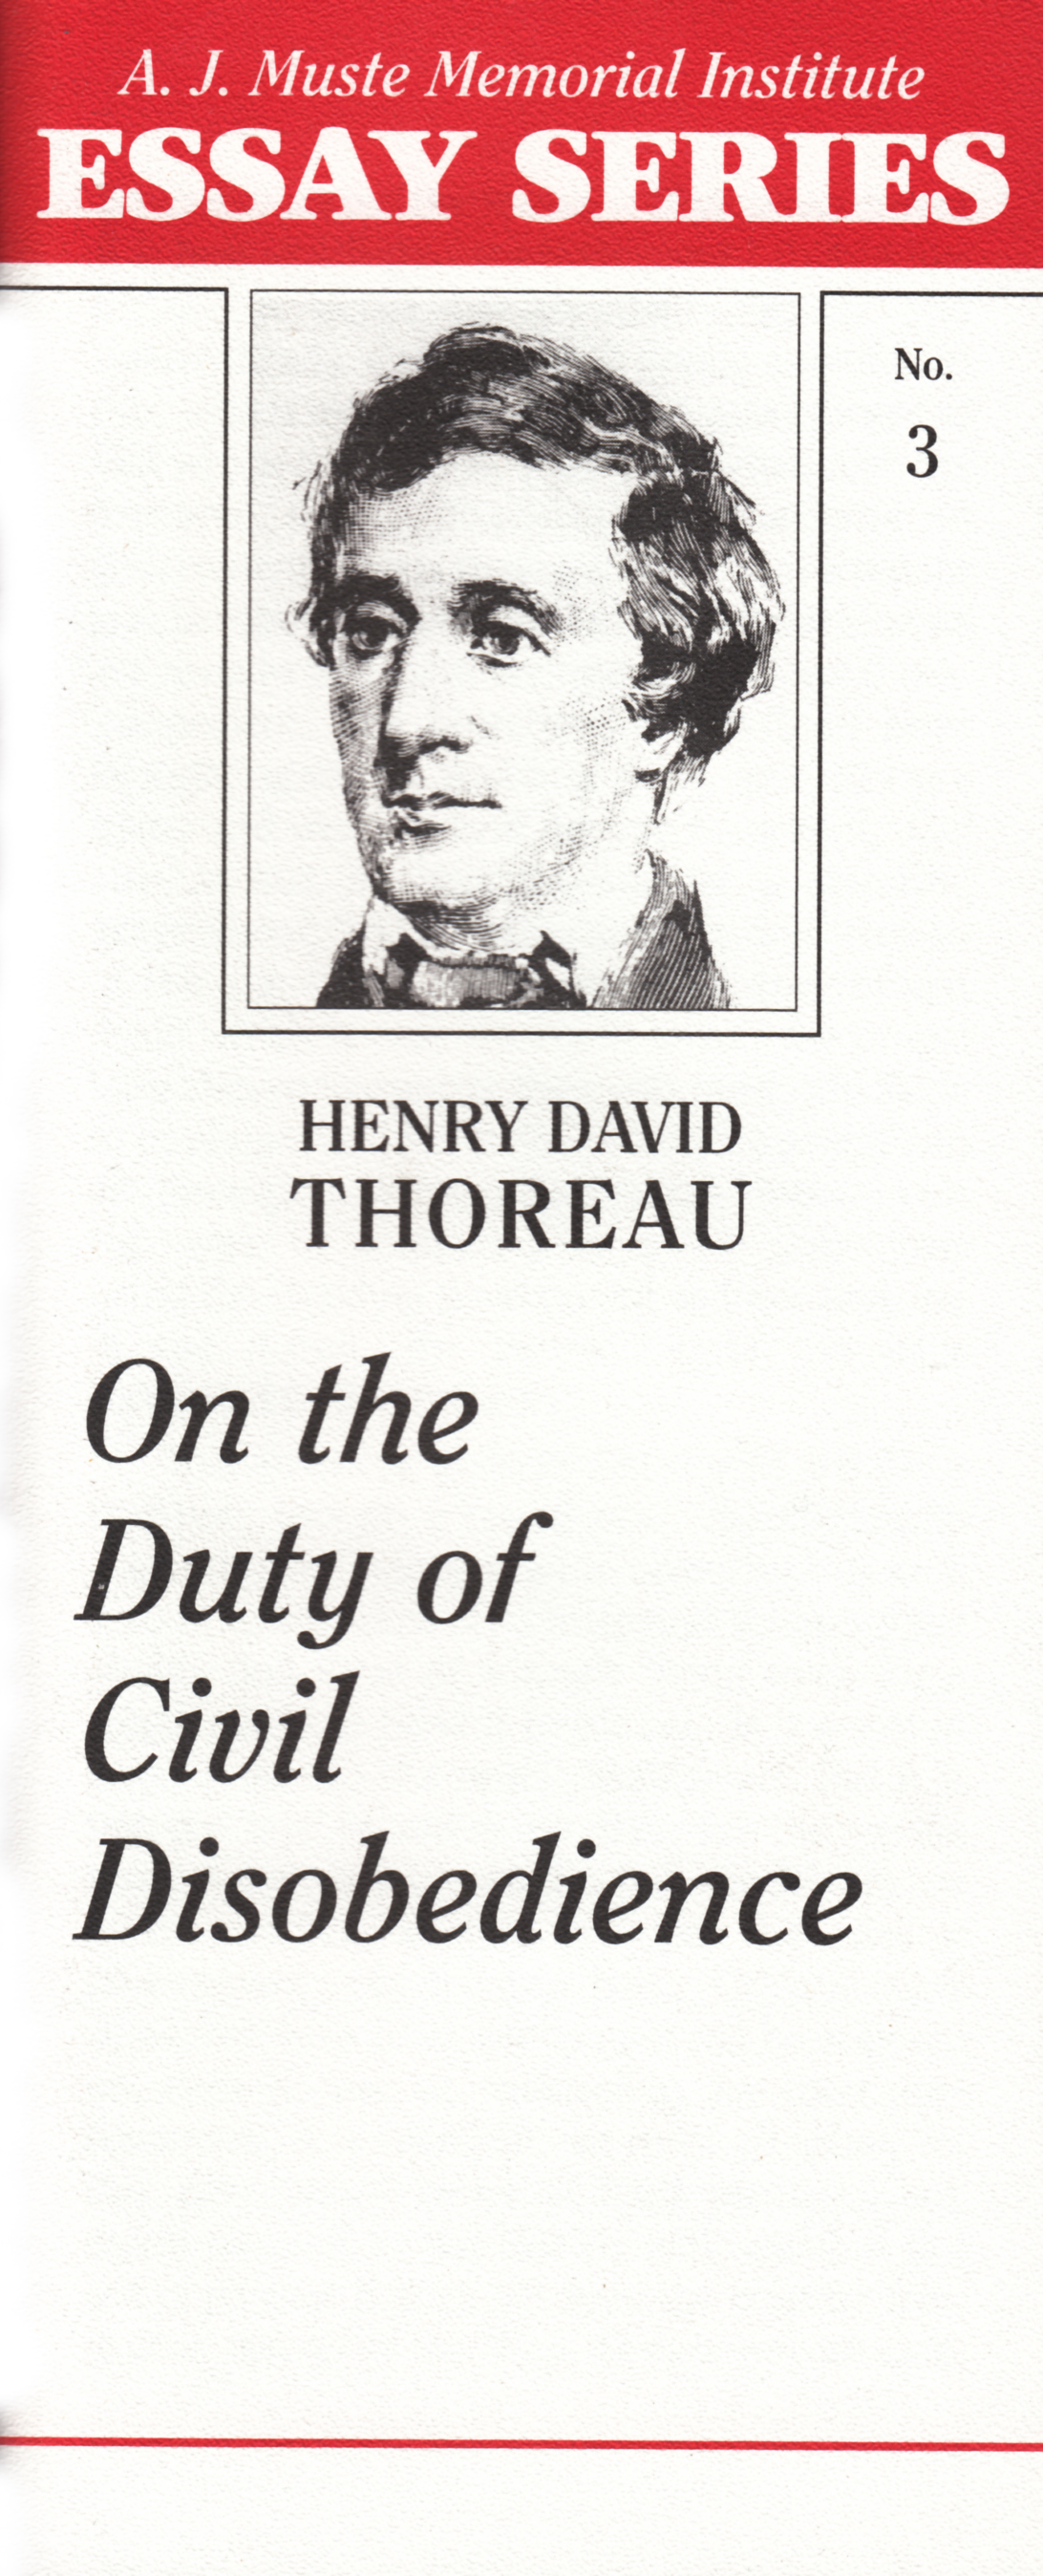 henry david thoreau thesis Henry david thoreau write a hook to the argument, and use the argument to find a strong argument ( strong thesis statement) to the essay compare and contrast main.